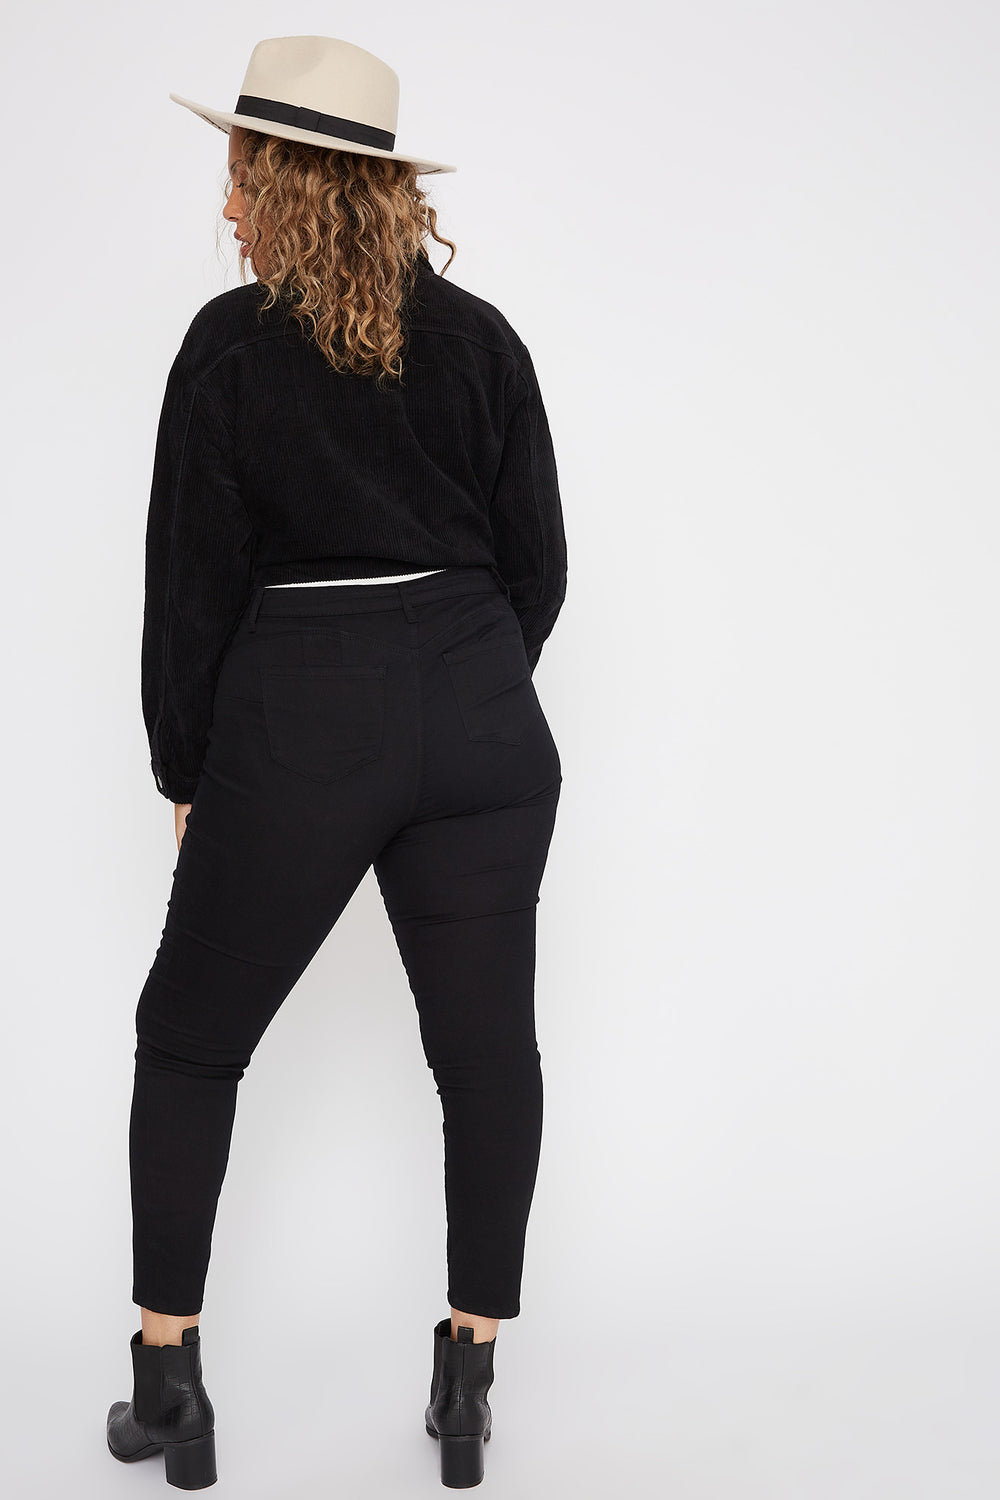 Plus Size Butt, I Love You Twill Stretch Push-Up Skinny Jean Black